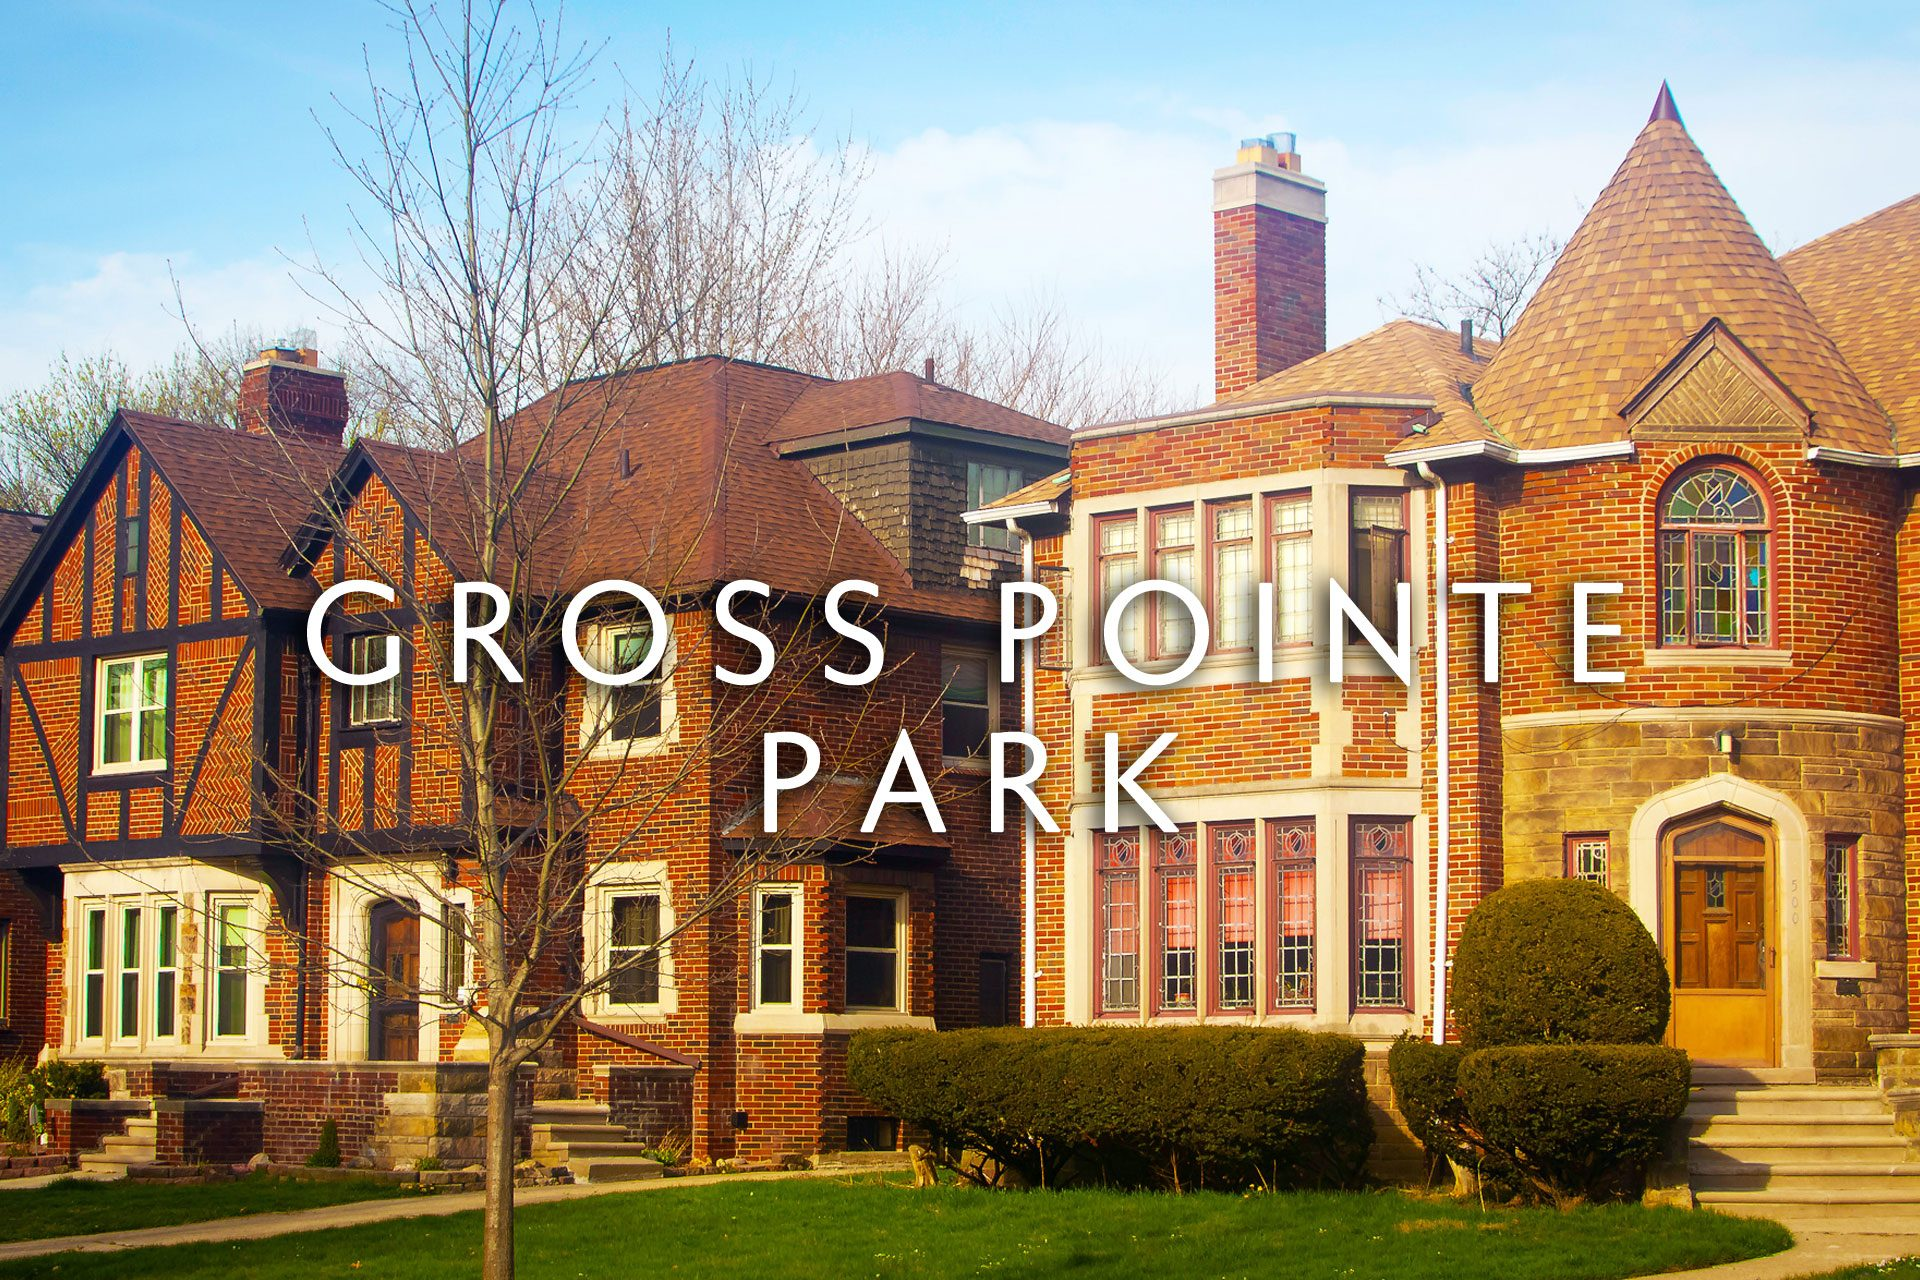 Gross Pointe Park Michigan Real Estate to Buy from Realtor D. Alex Vaughn is owner of the Vaughn Luxury Real Estate Group focusing on Real Estate in the MIami and Detroit Markets.